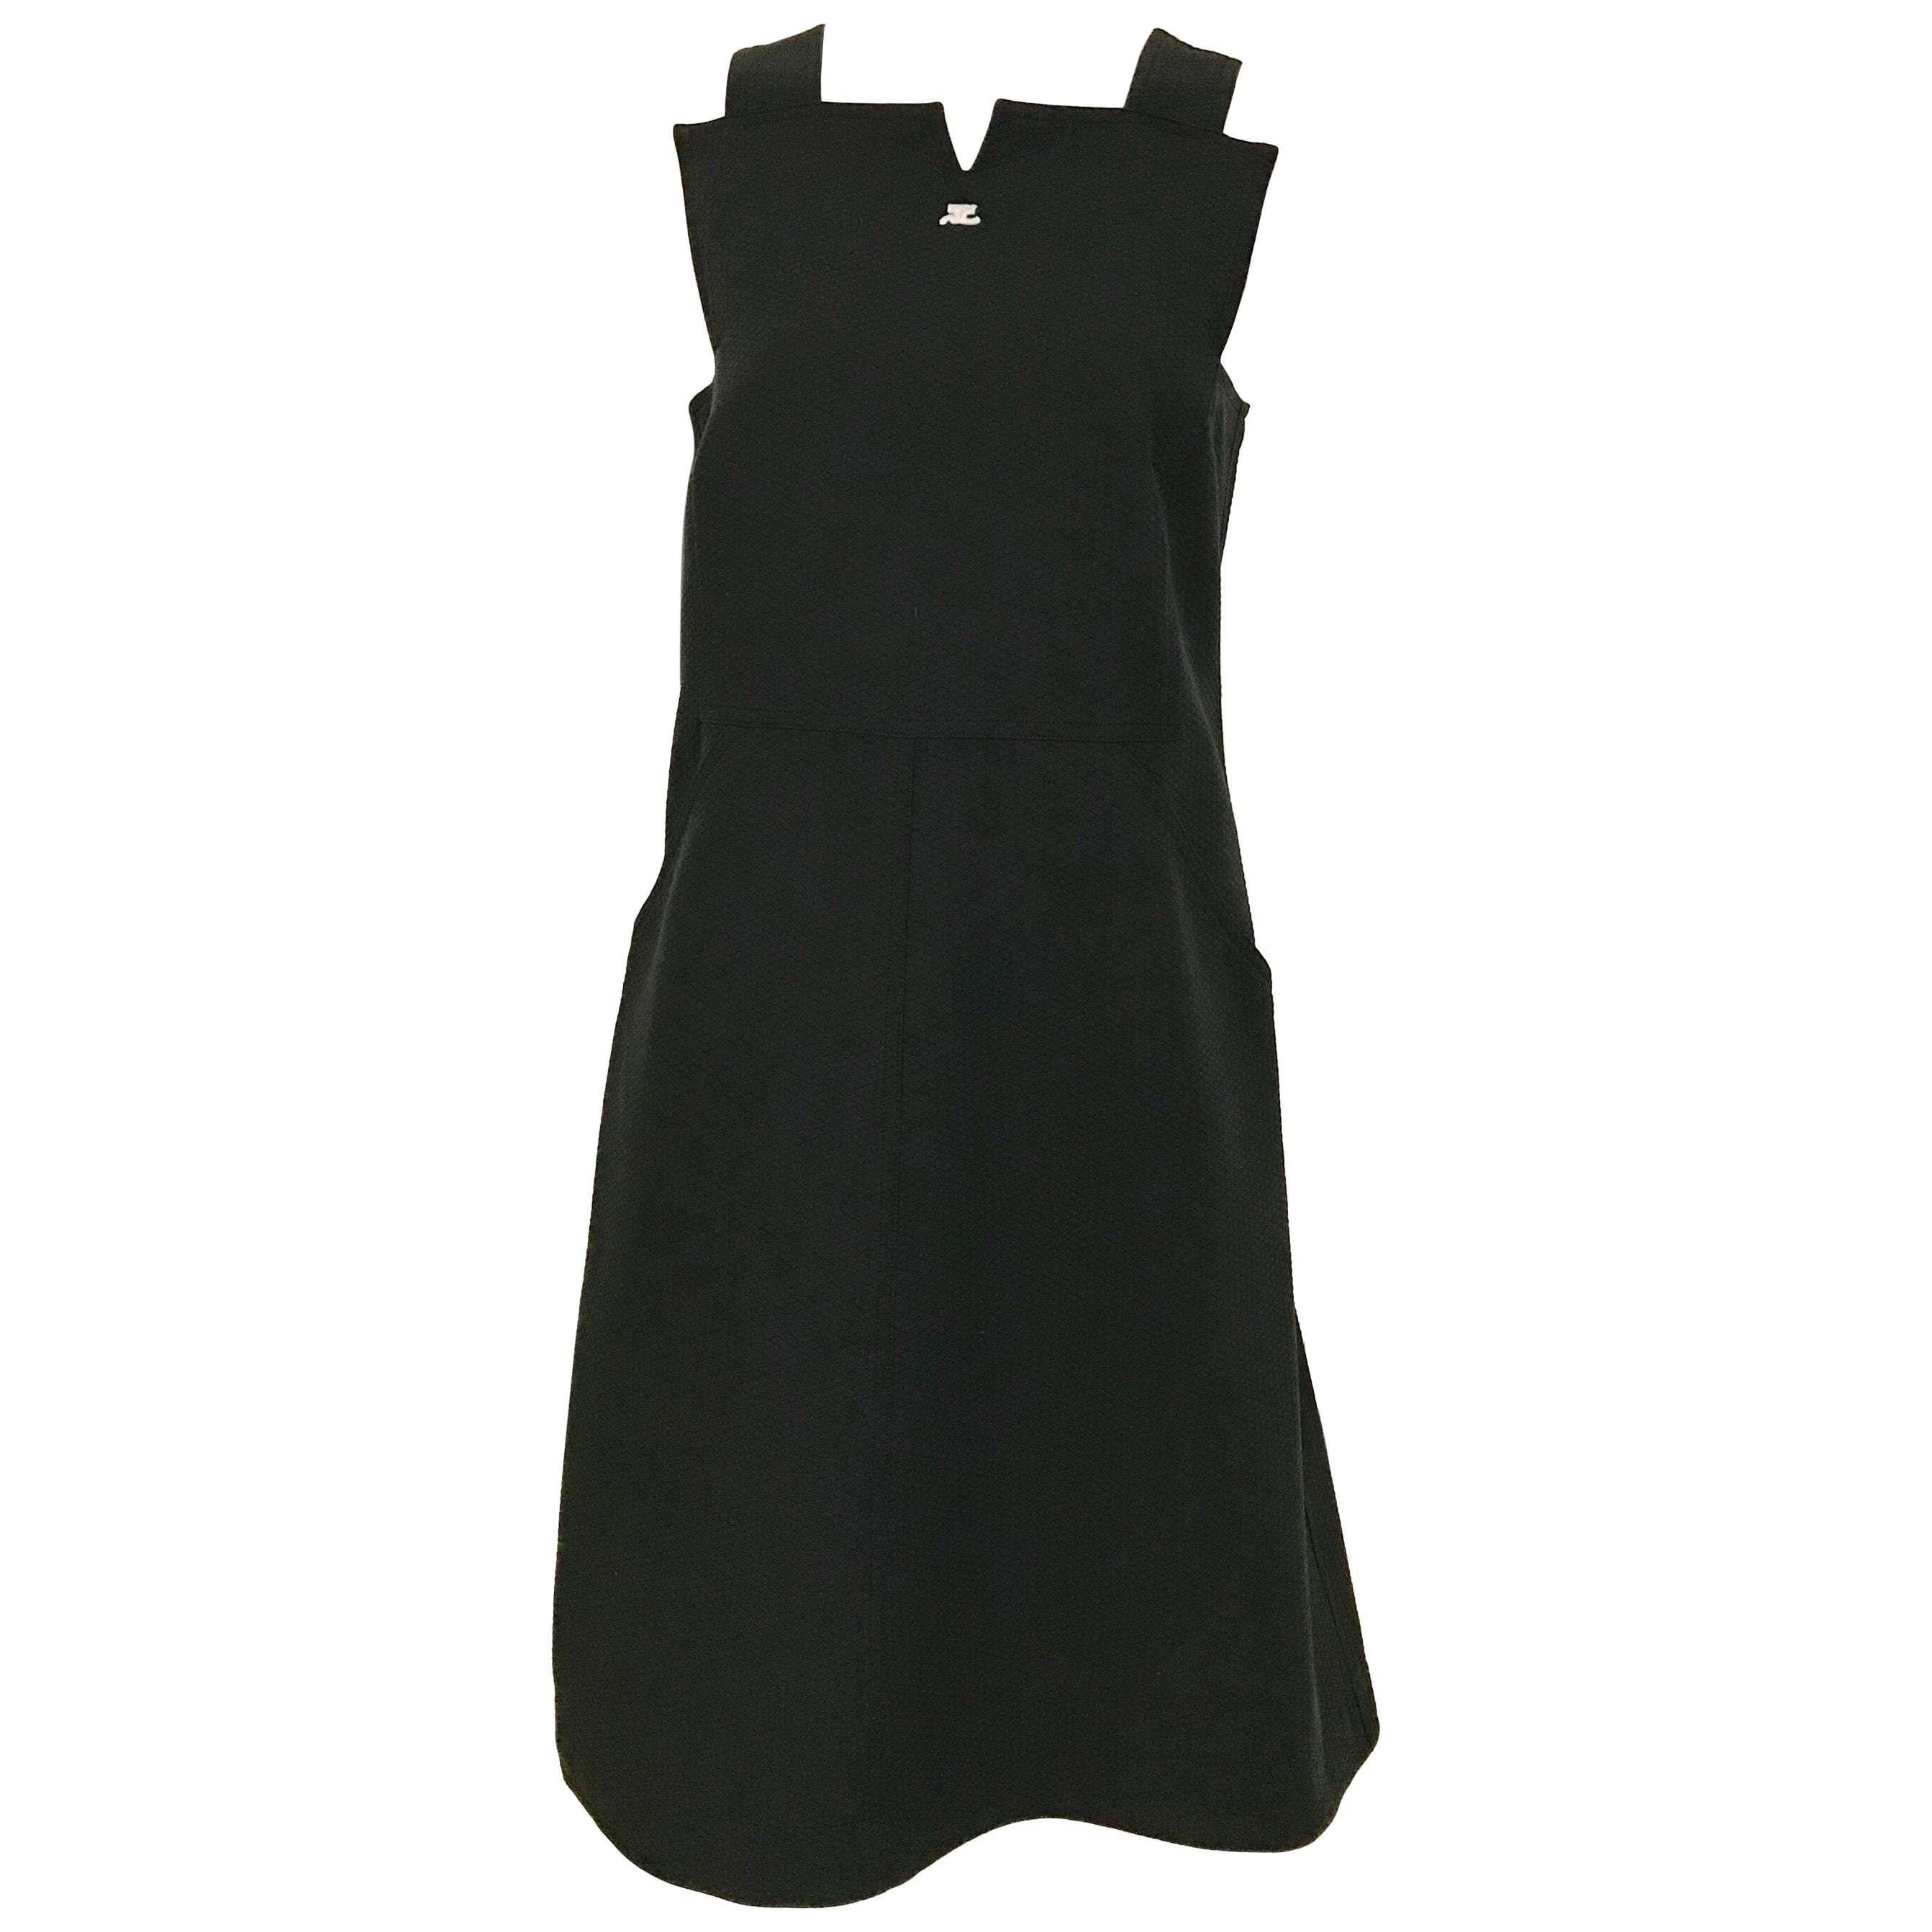 Courrege Black Cotton Sleeveless Dress